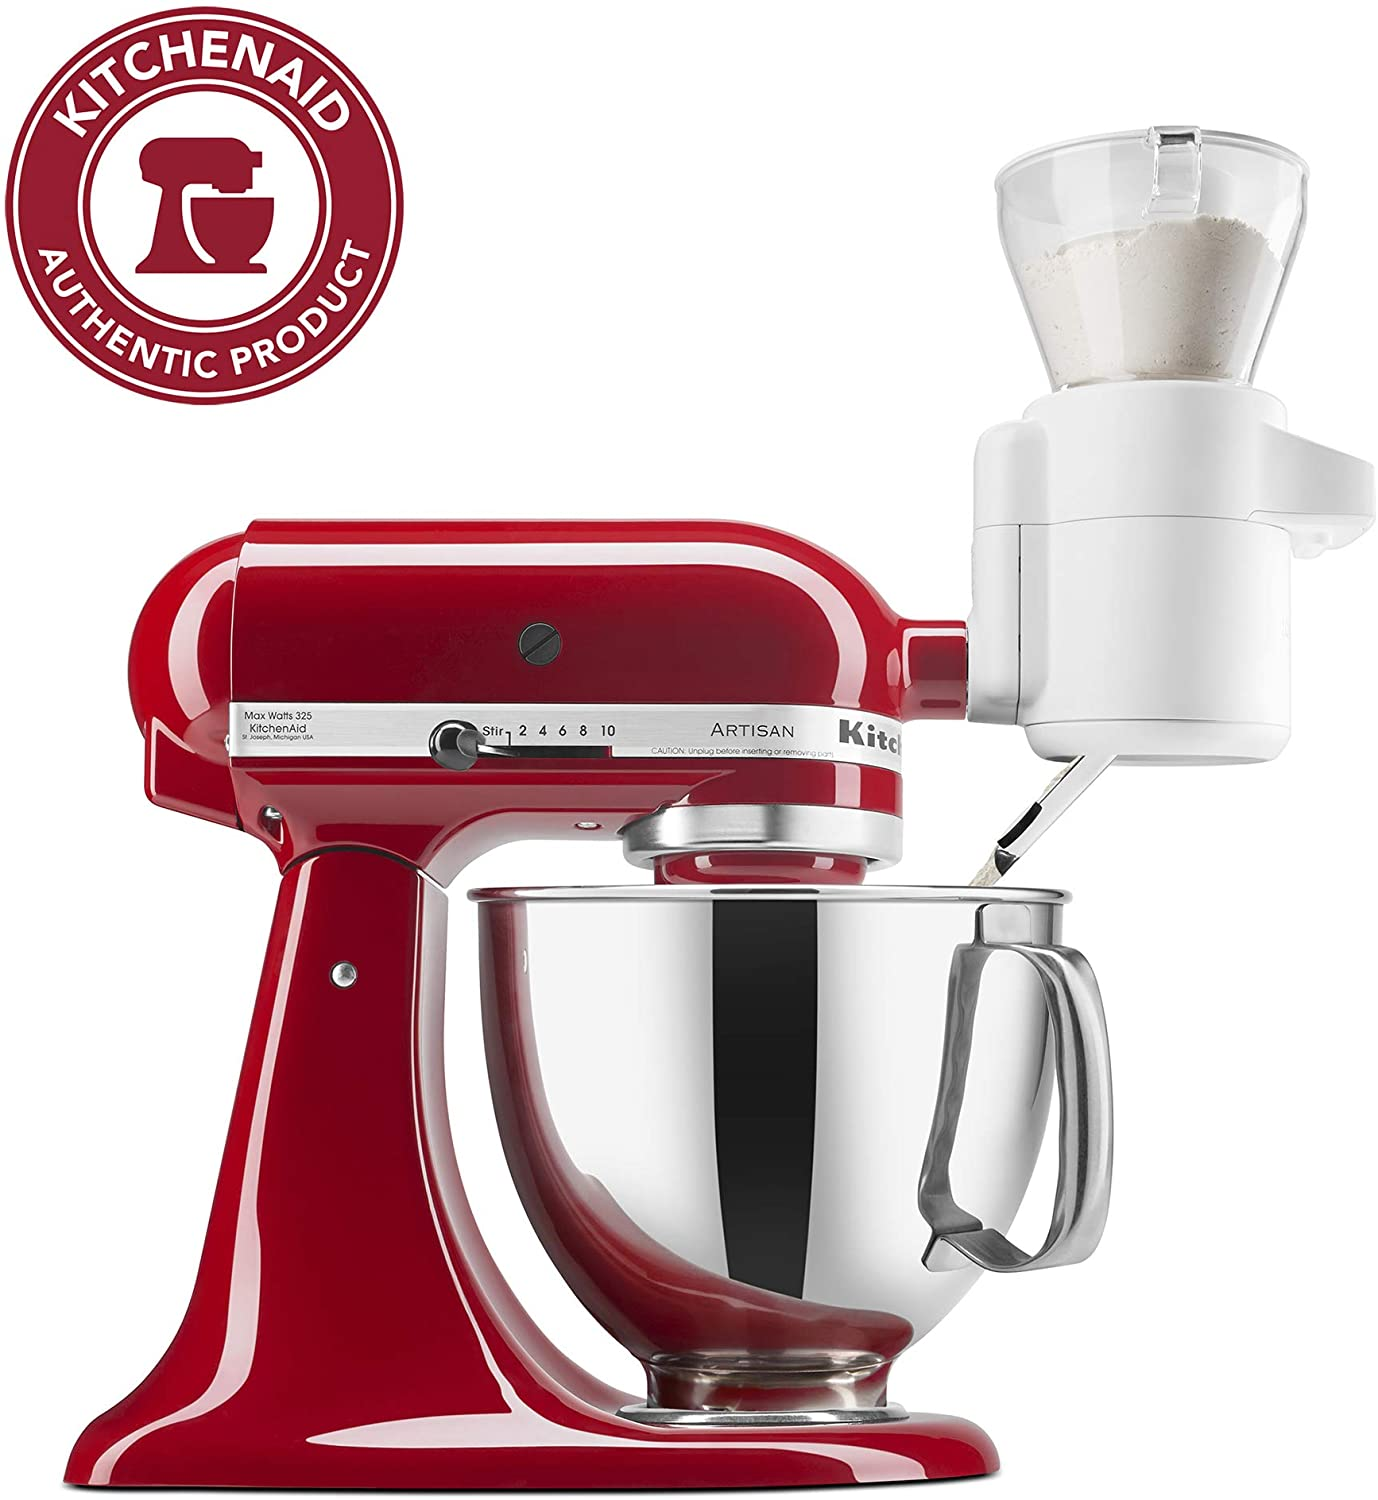 can you put the KitchenAid food processor in a dishwasher?